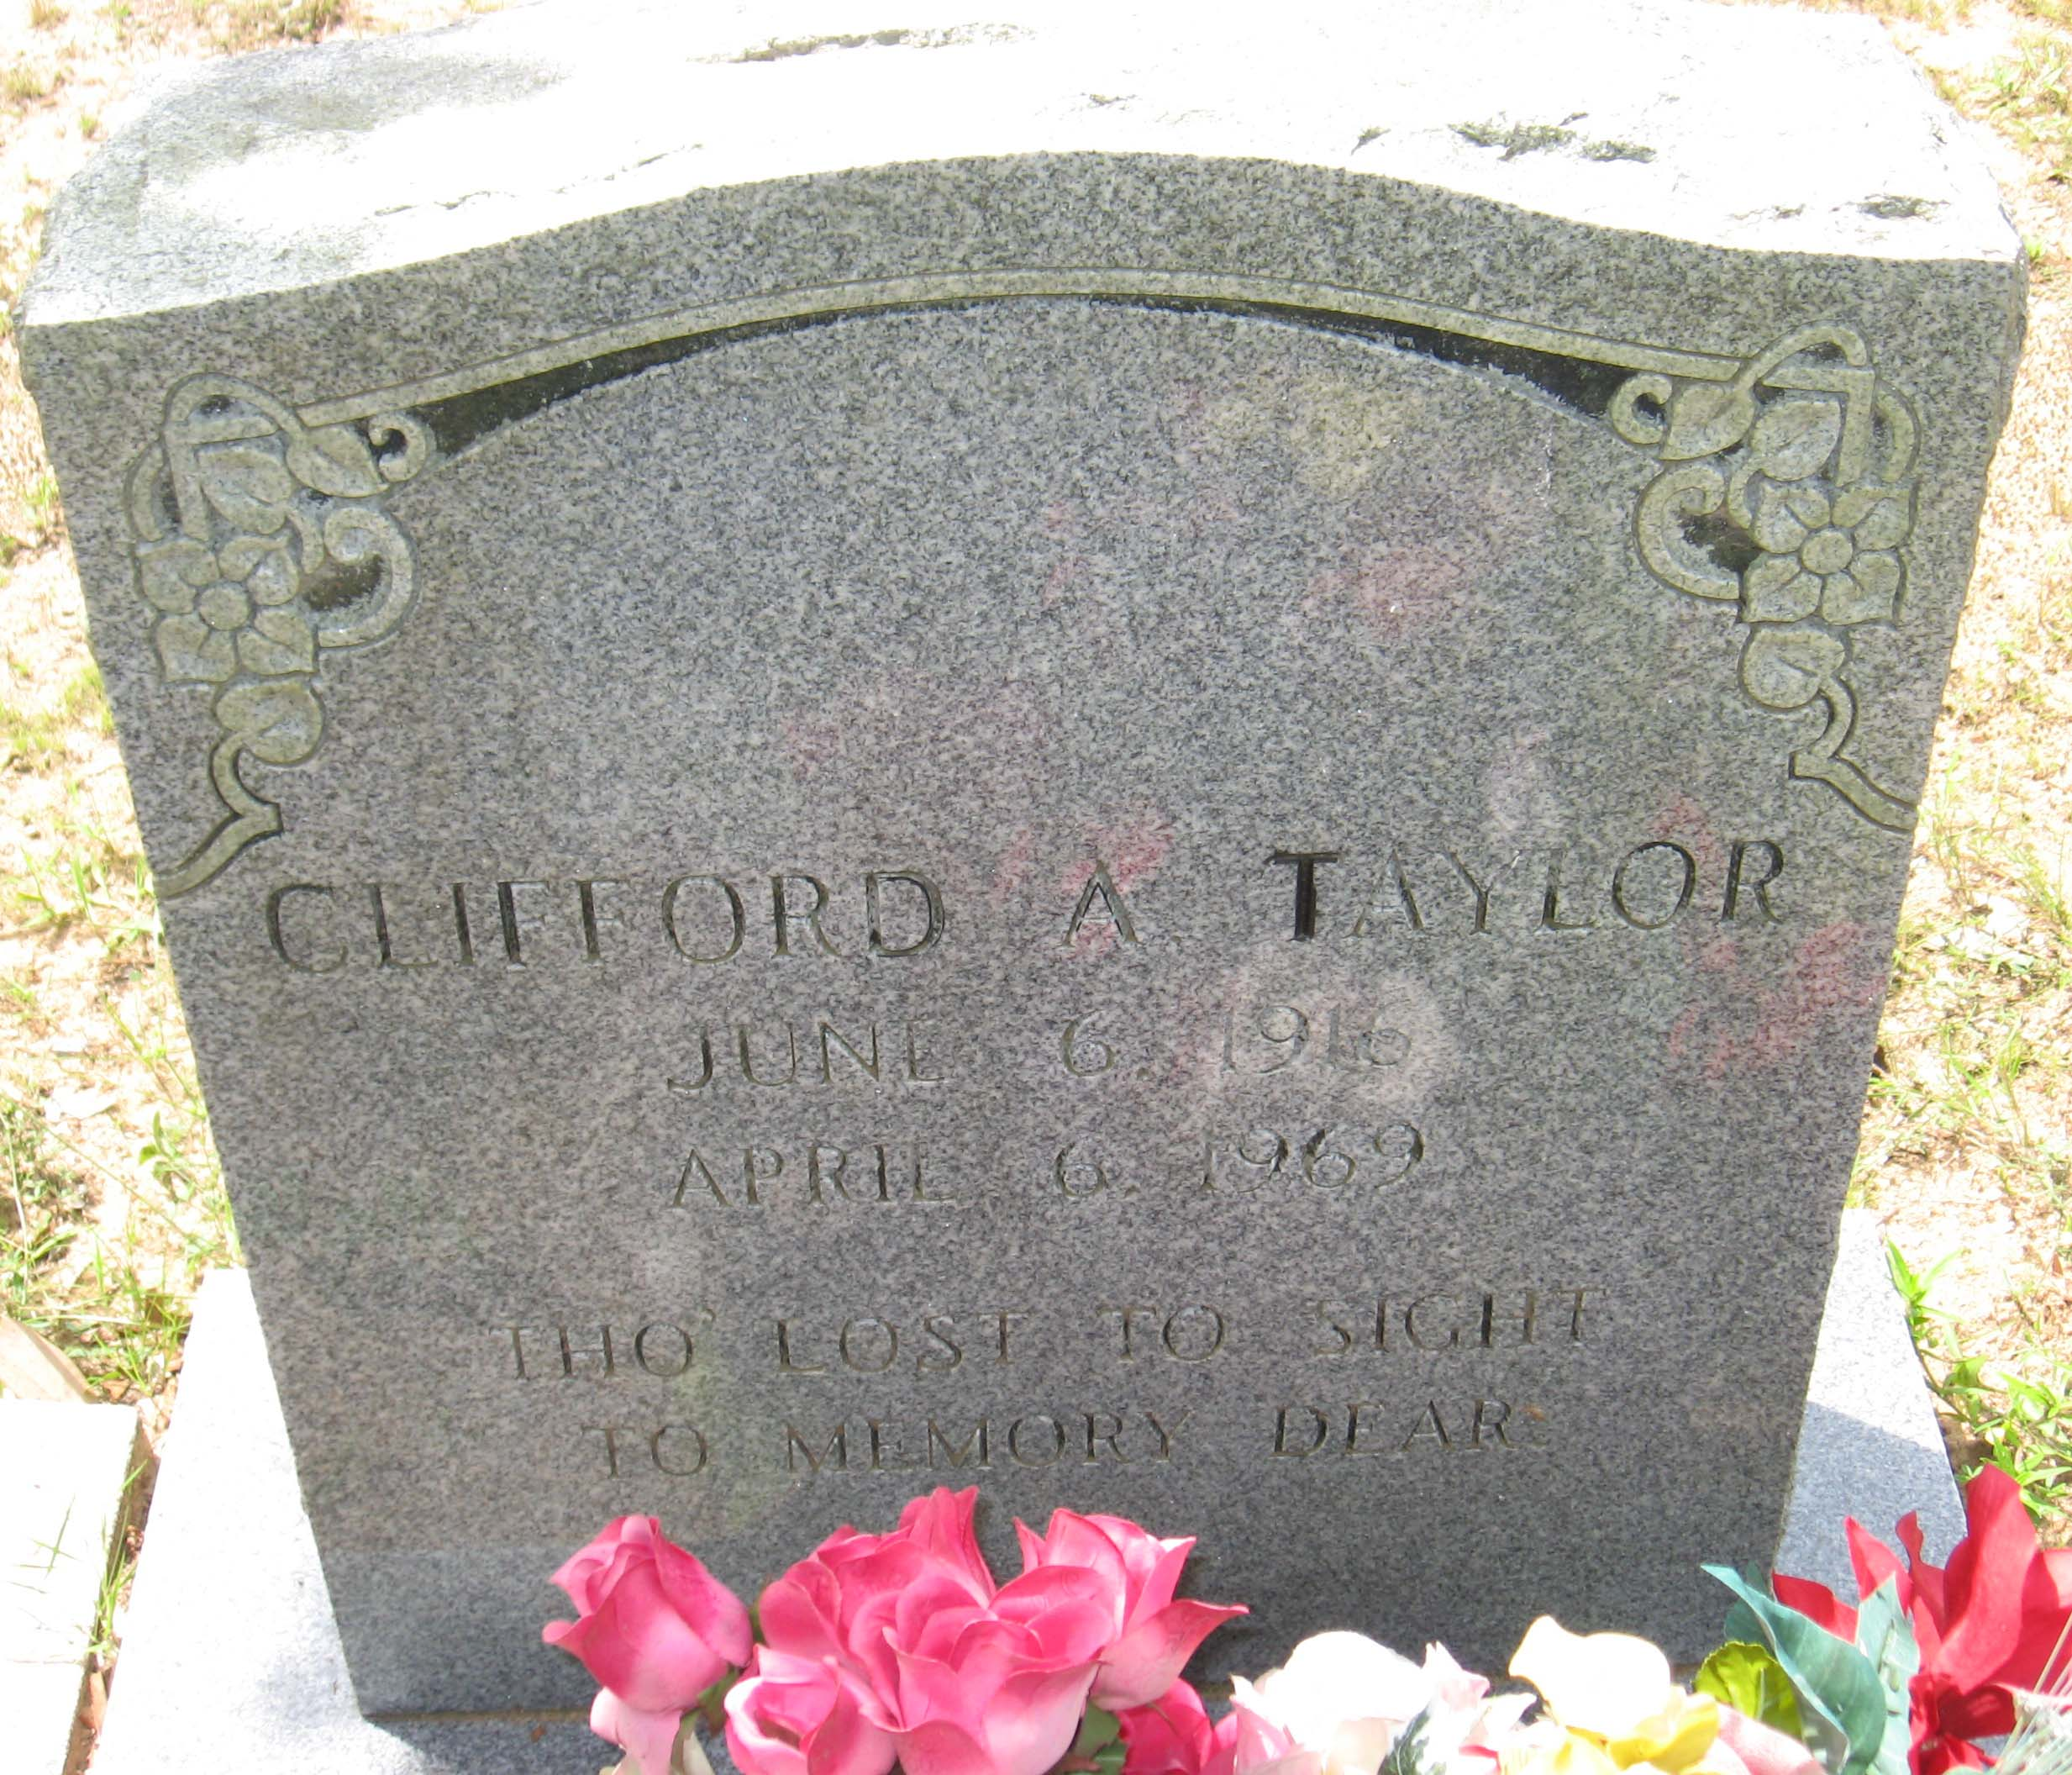 Clifford A. Taylor